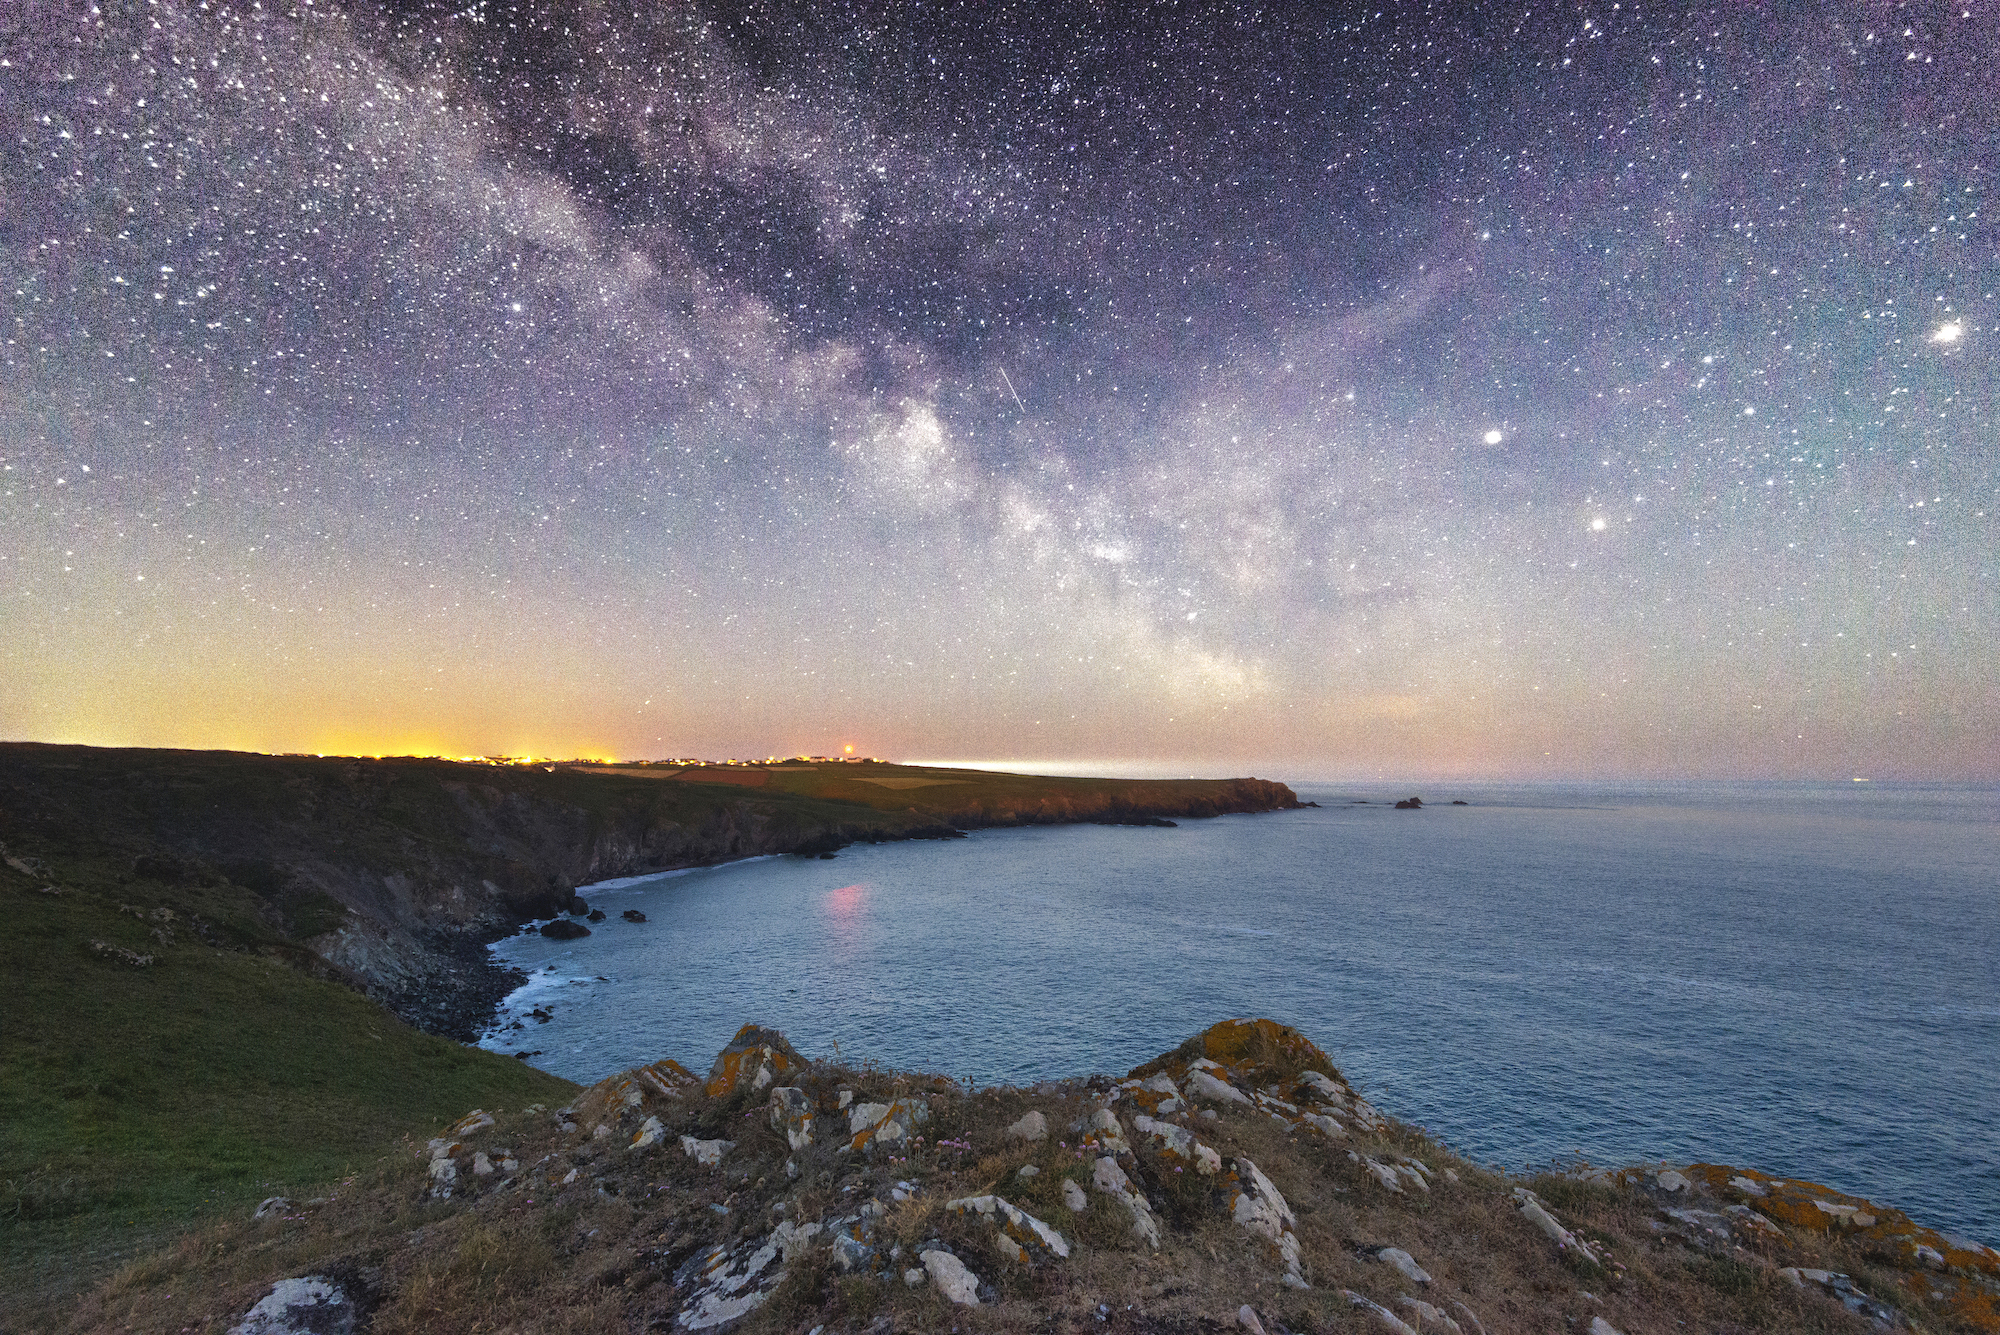 The Milky Way over the Cornish coastline at Kyance Cove.